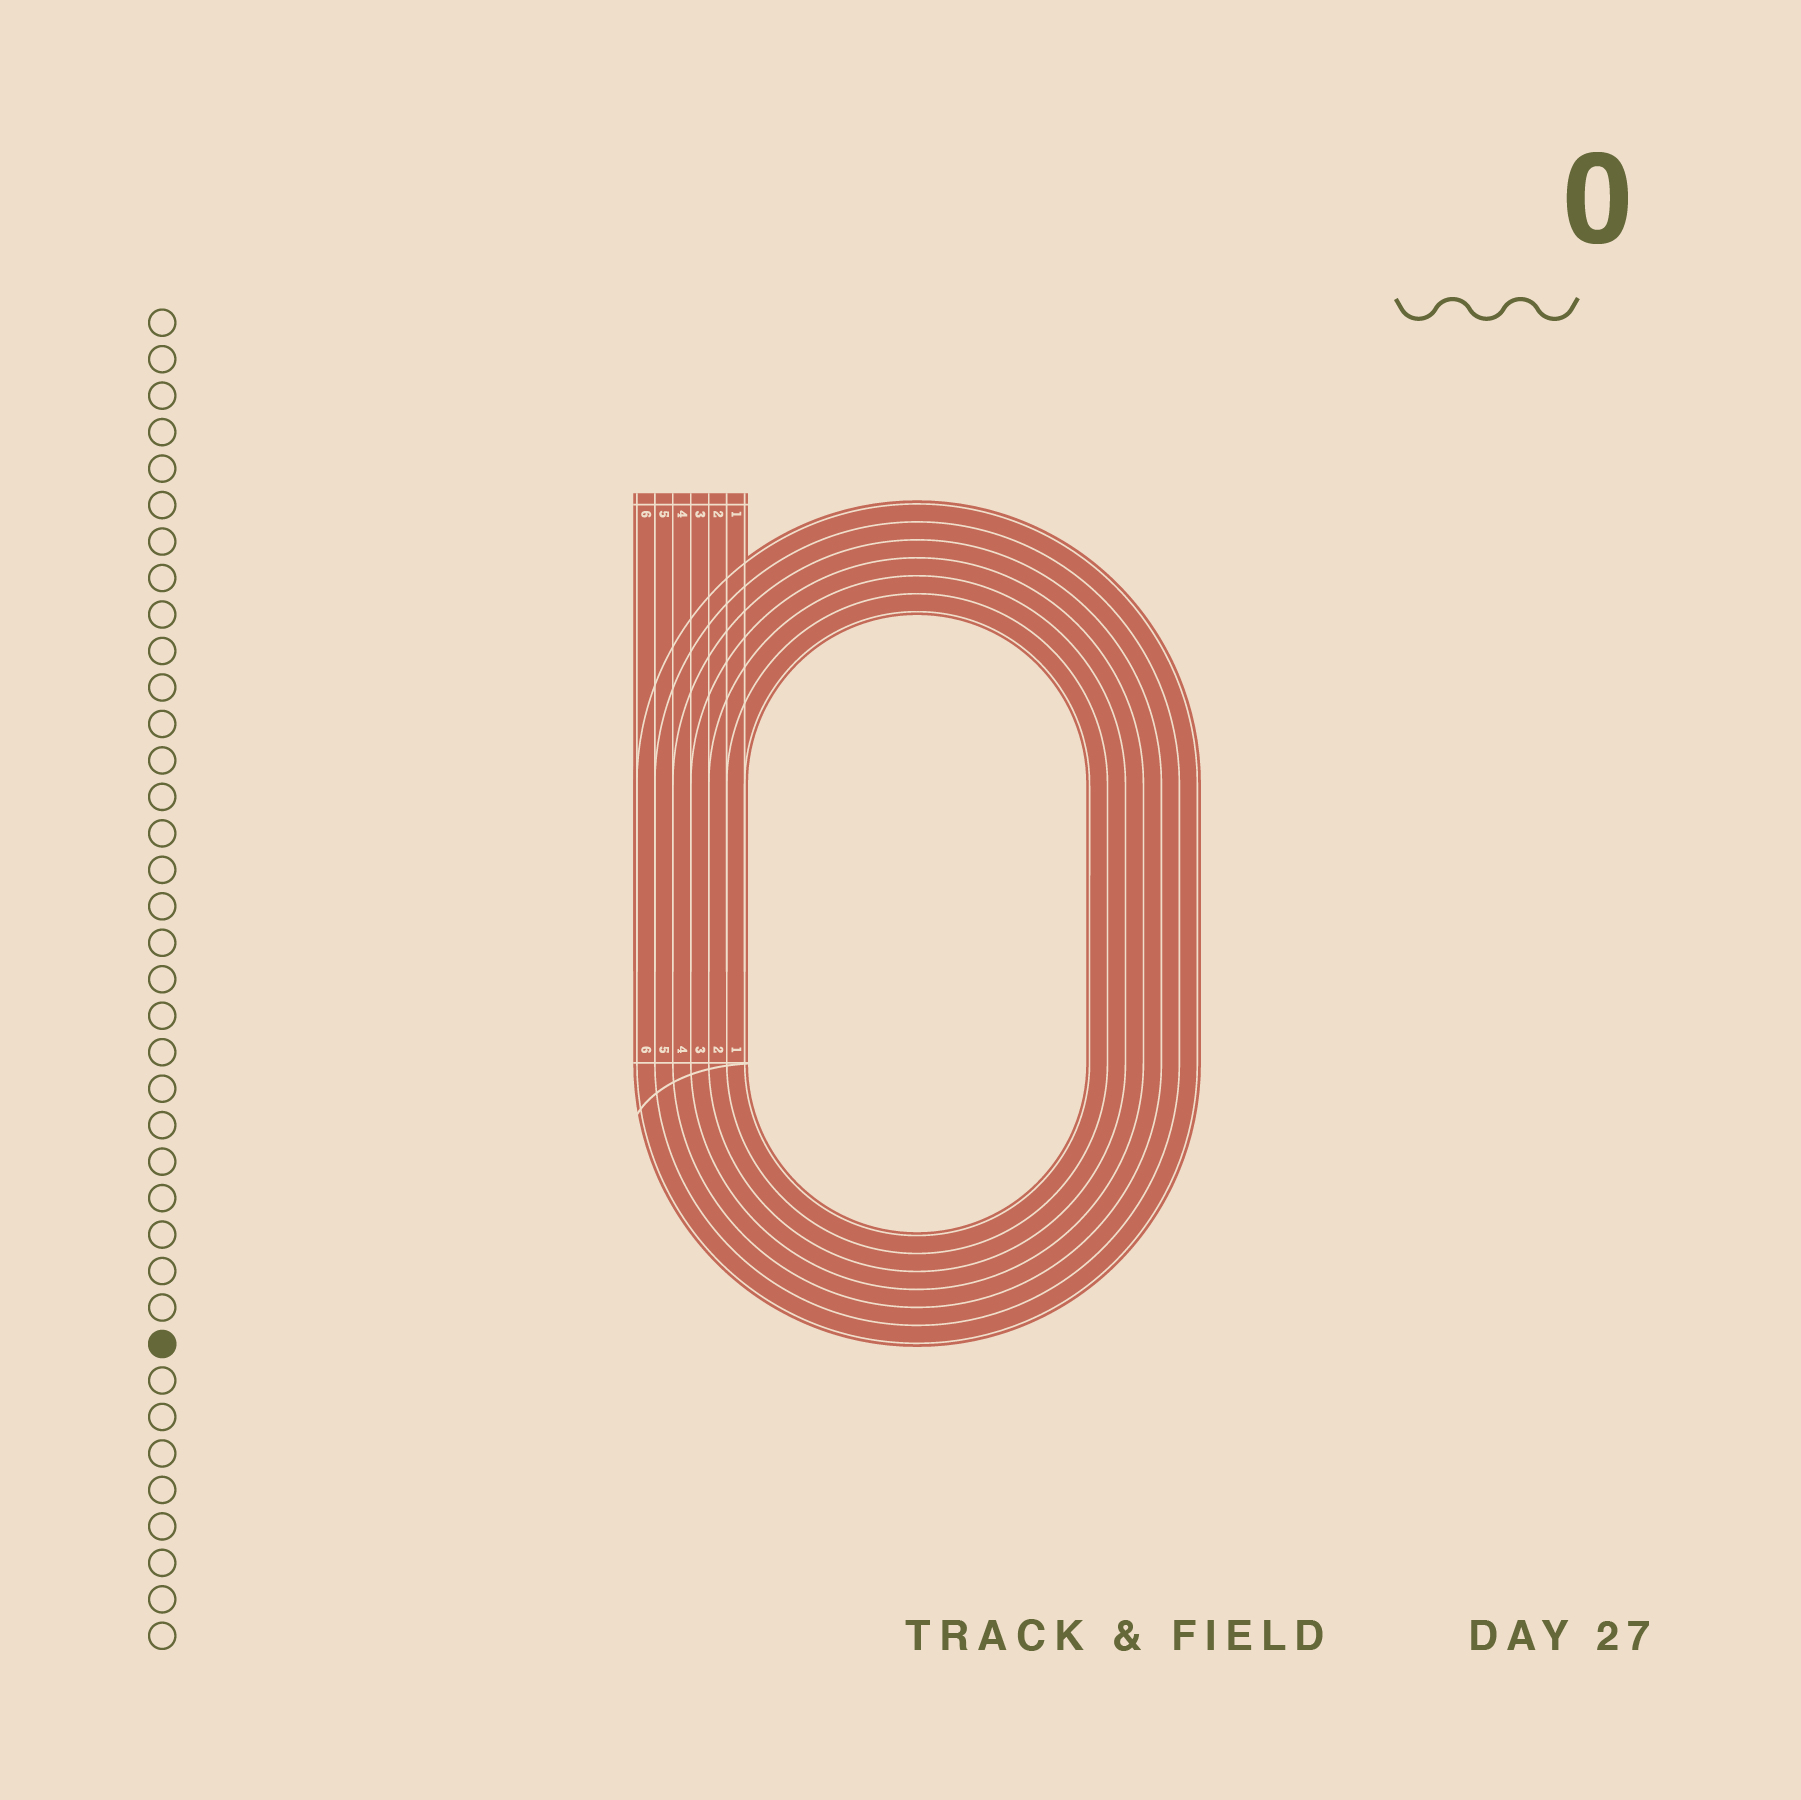 36DaysOfType_0.png